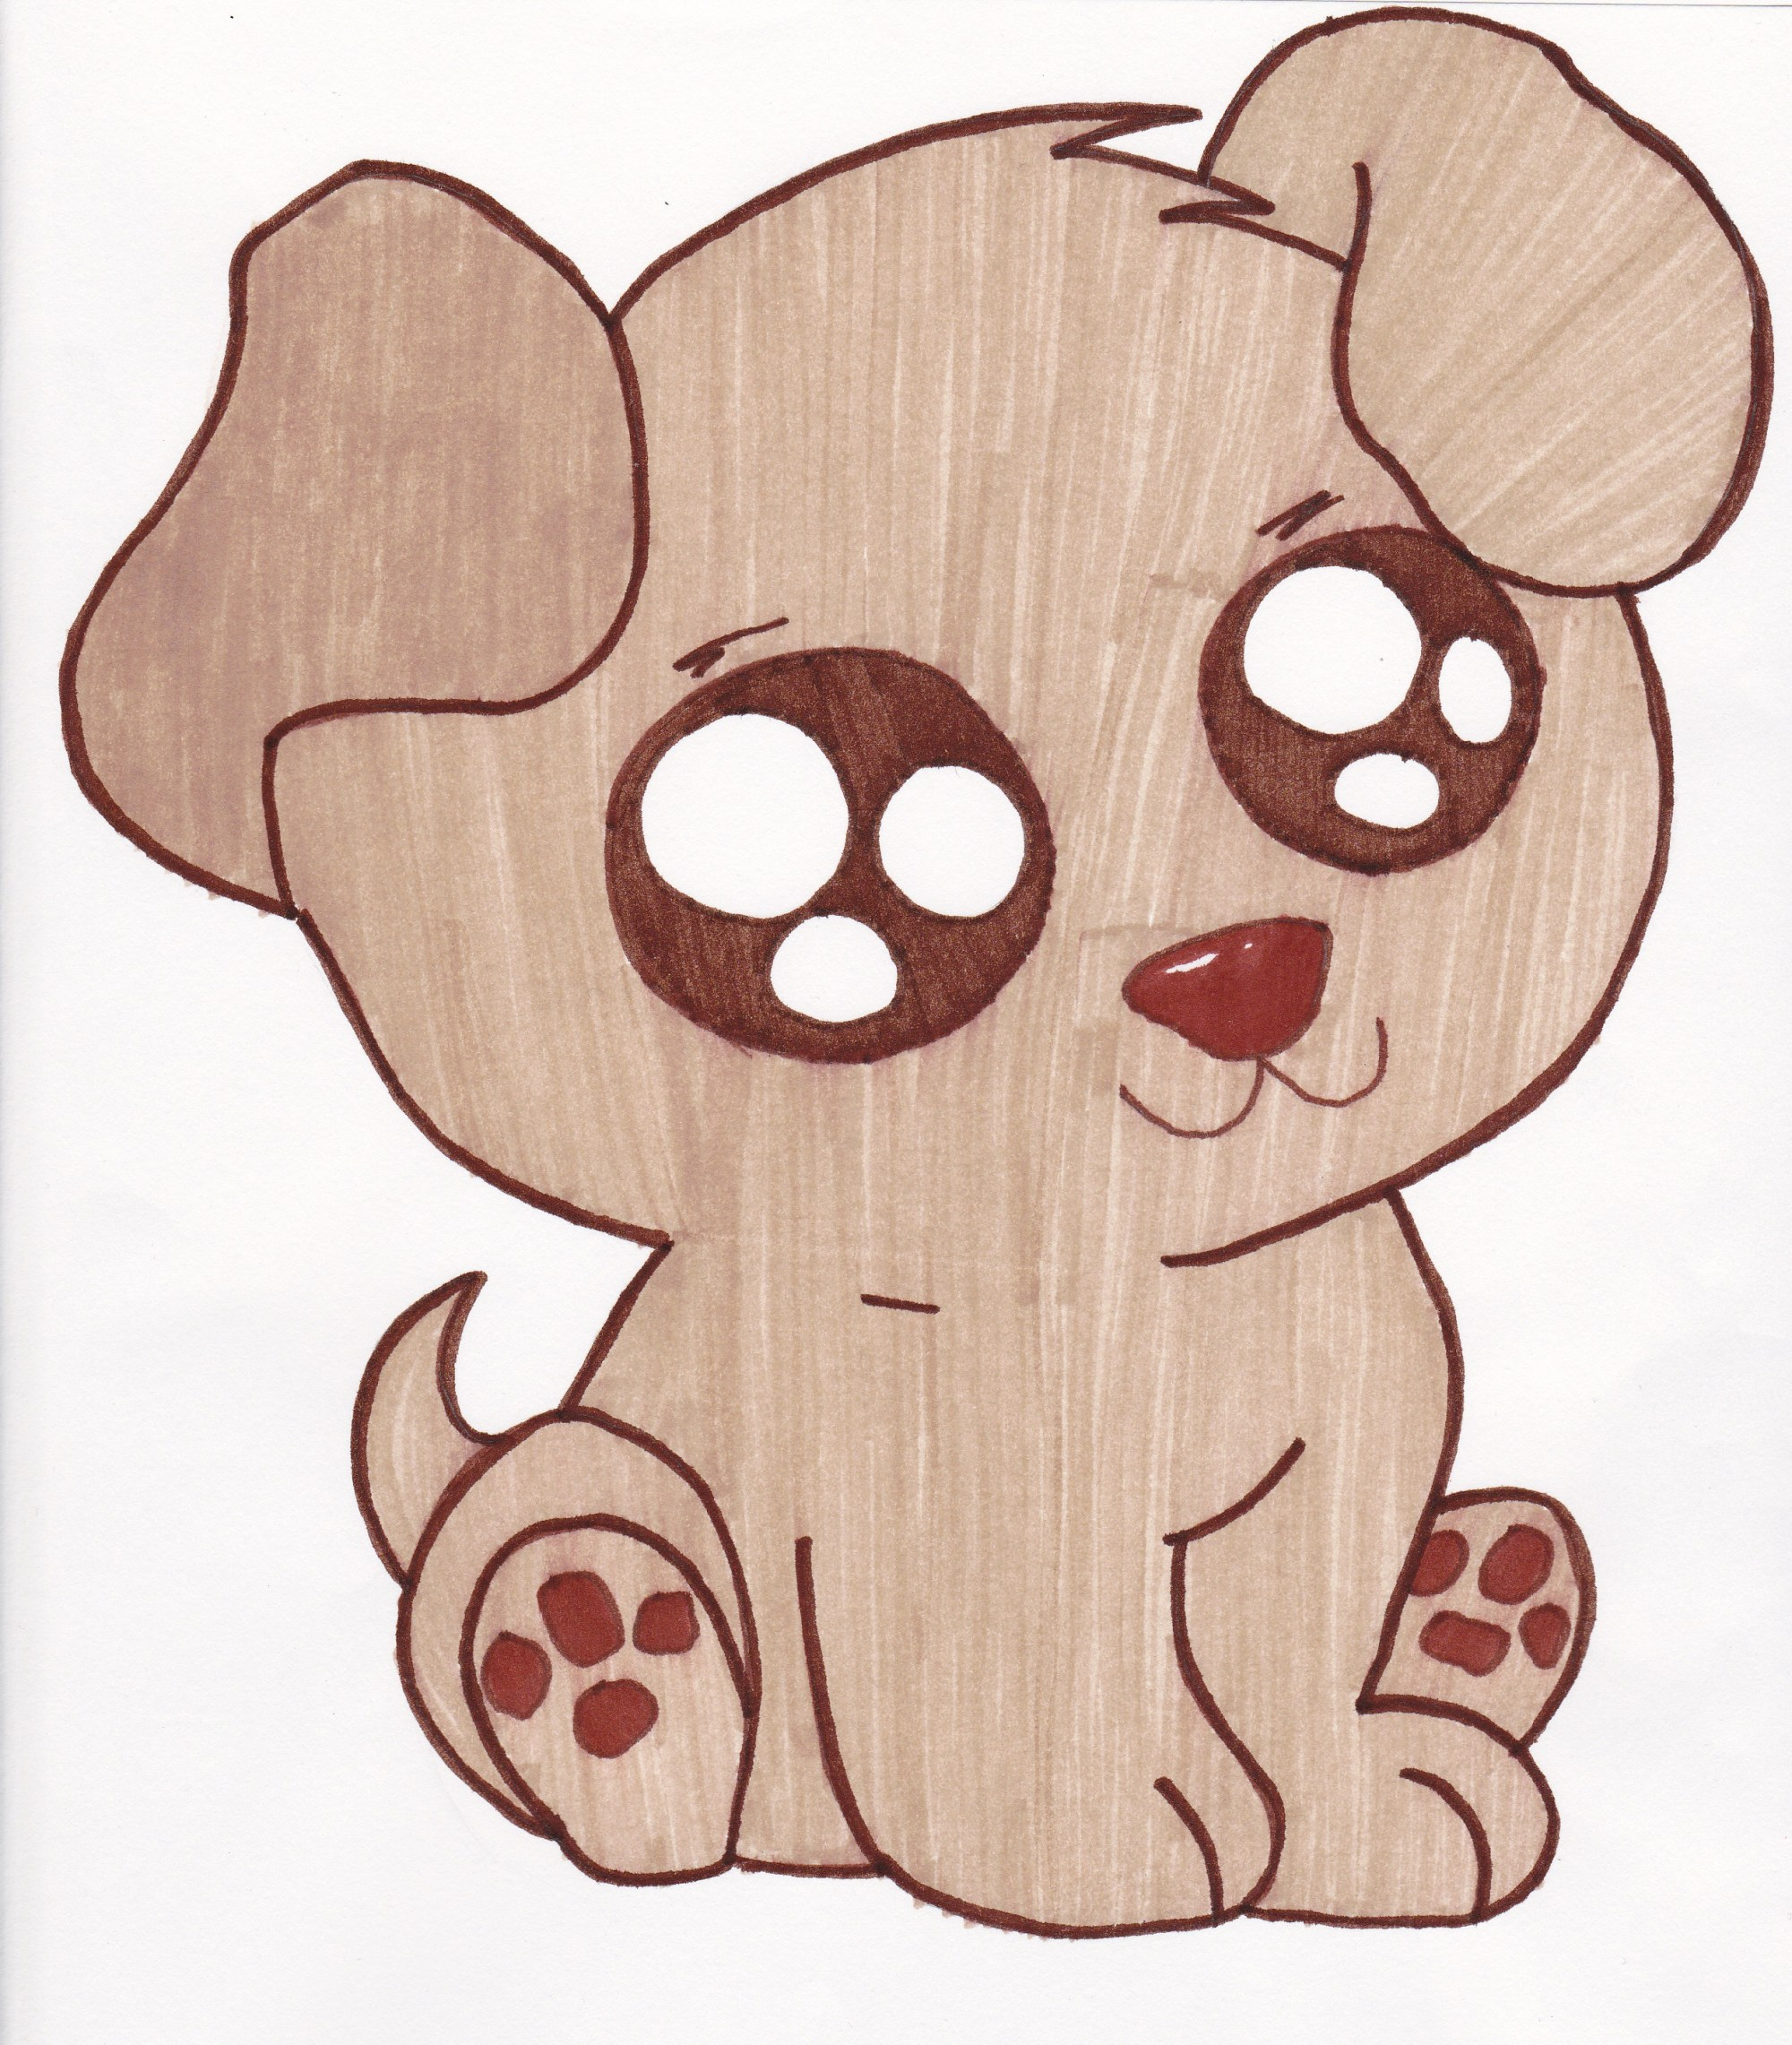 hight resolution of free puppy clipart image clipart image